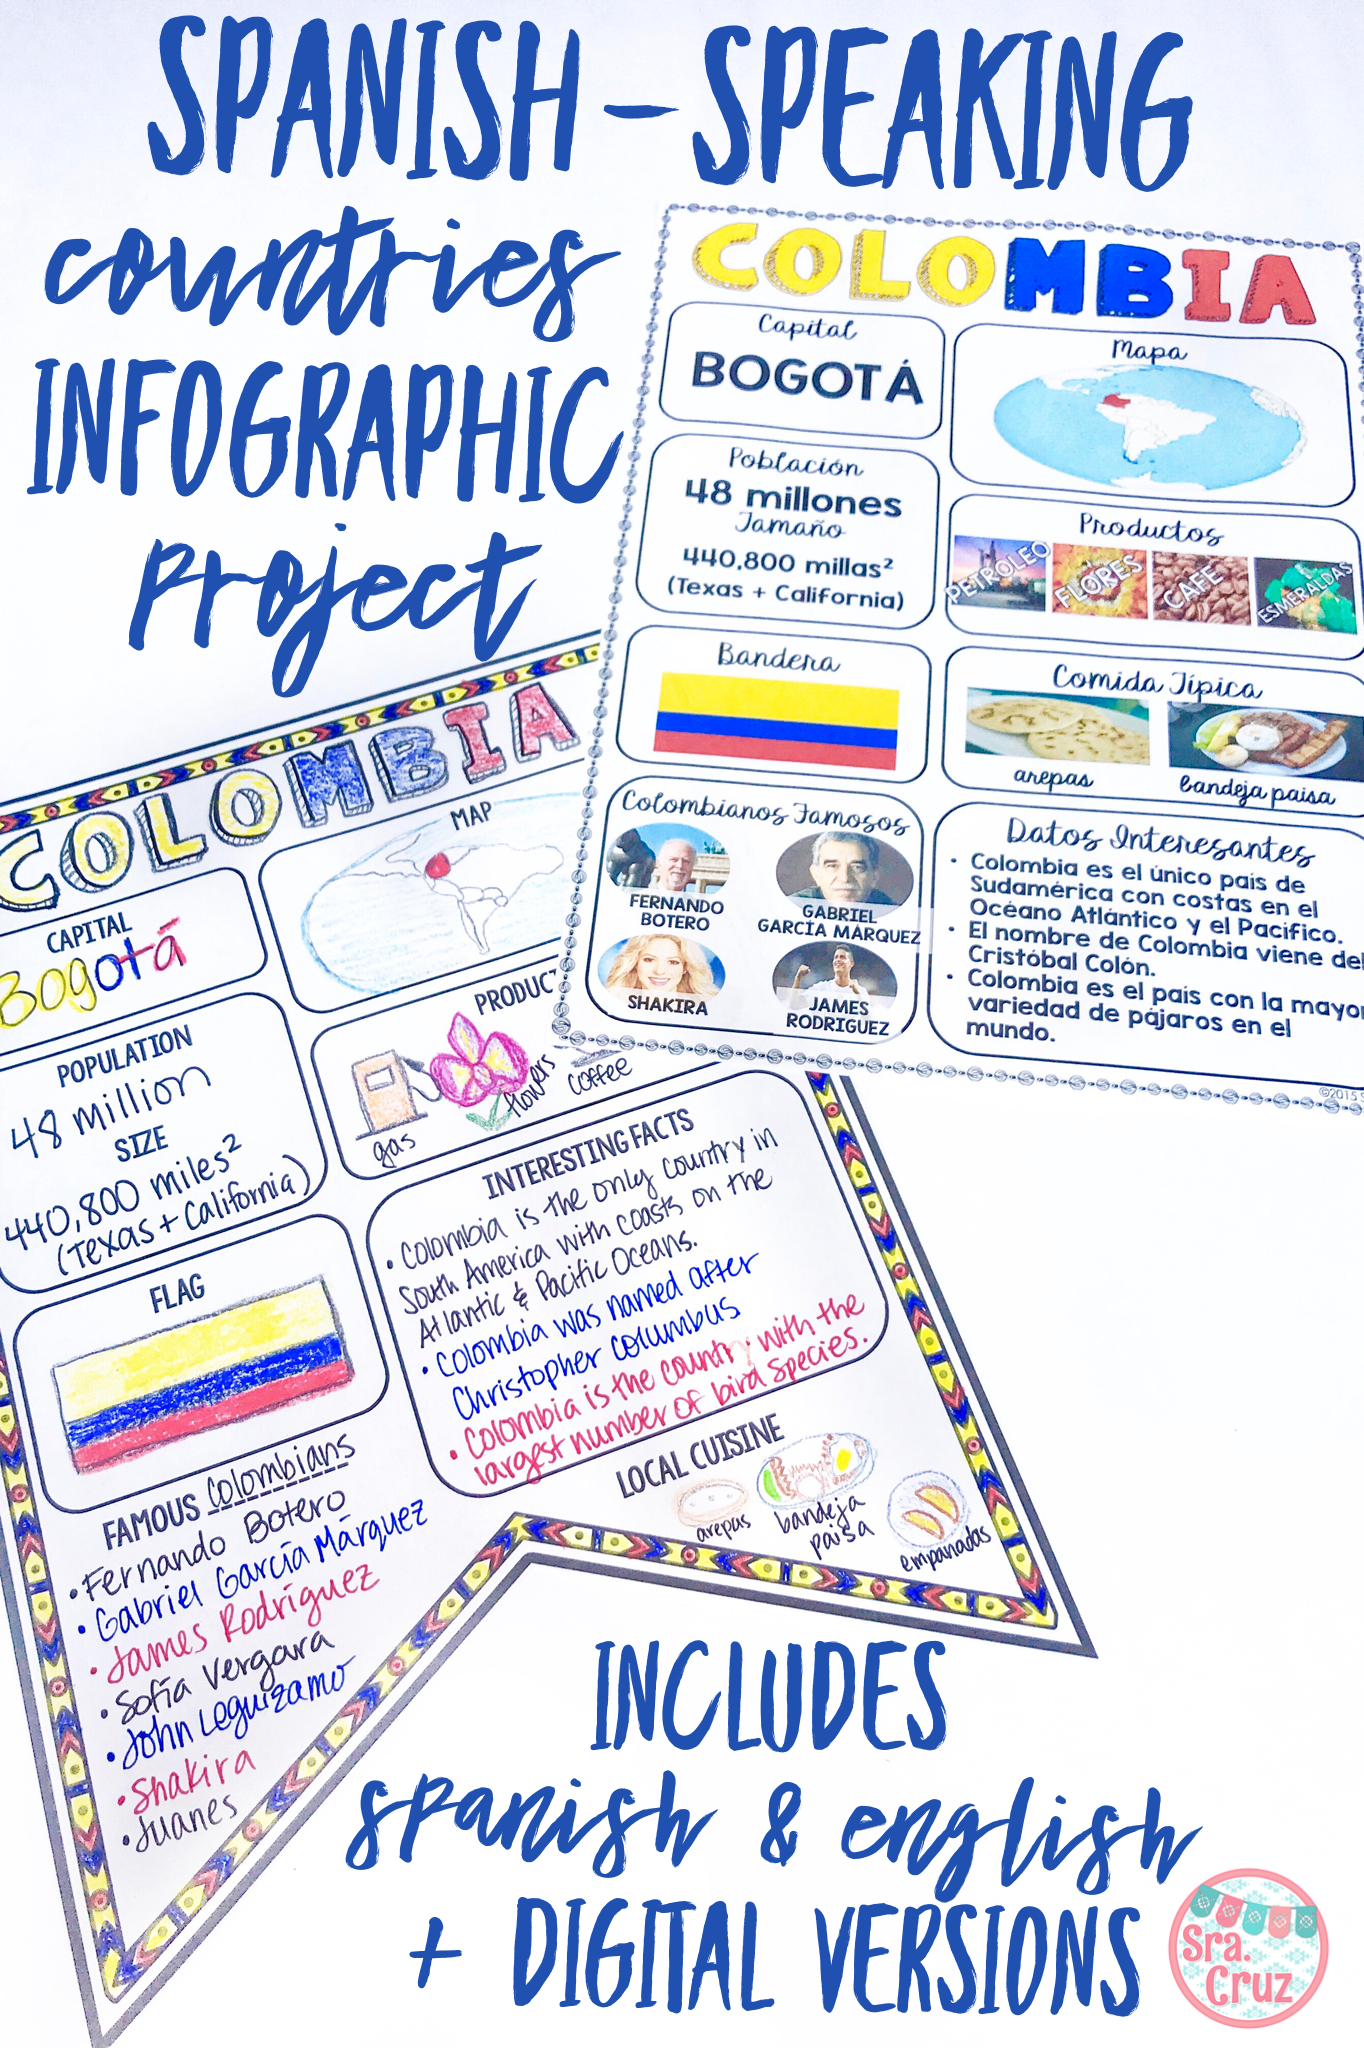 Spanish Speaking Countries Project By Sra Cruz